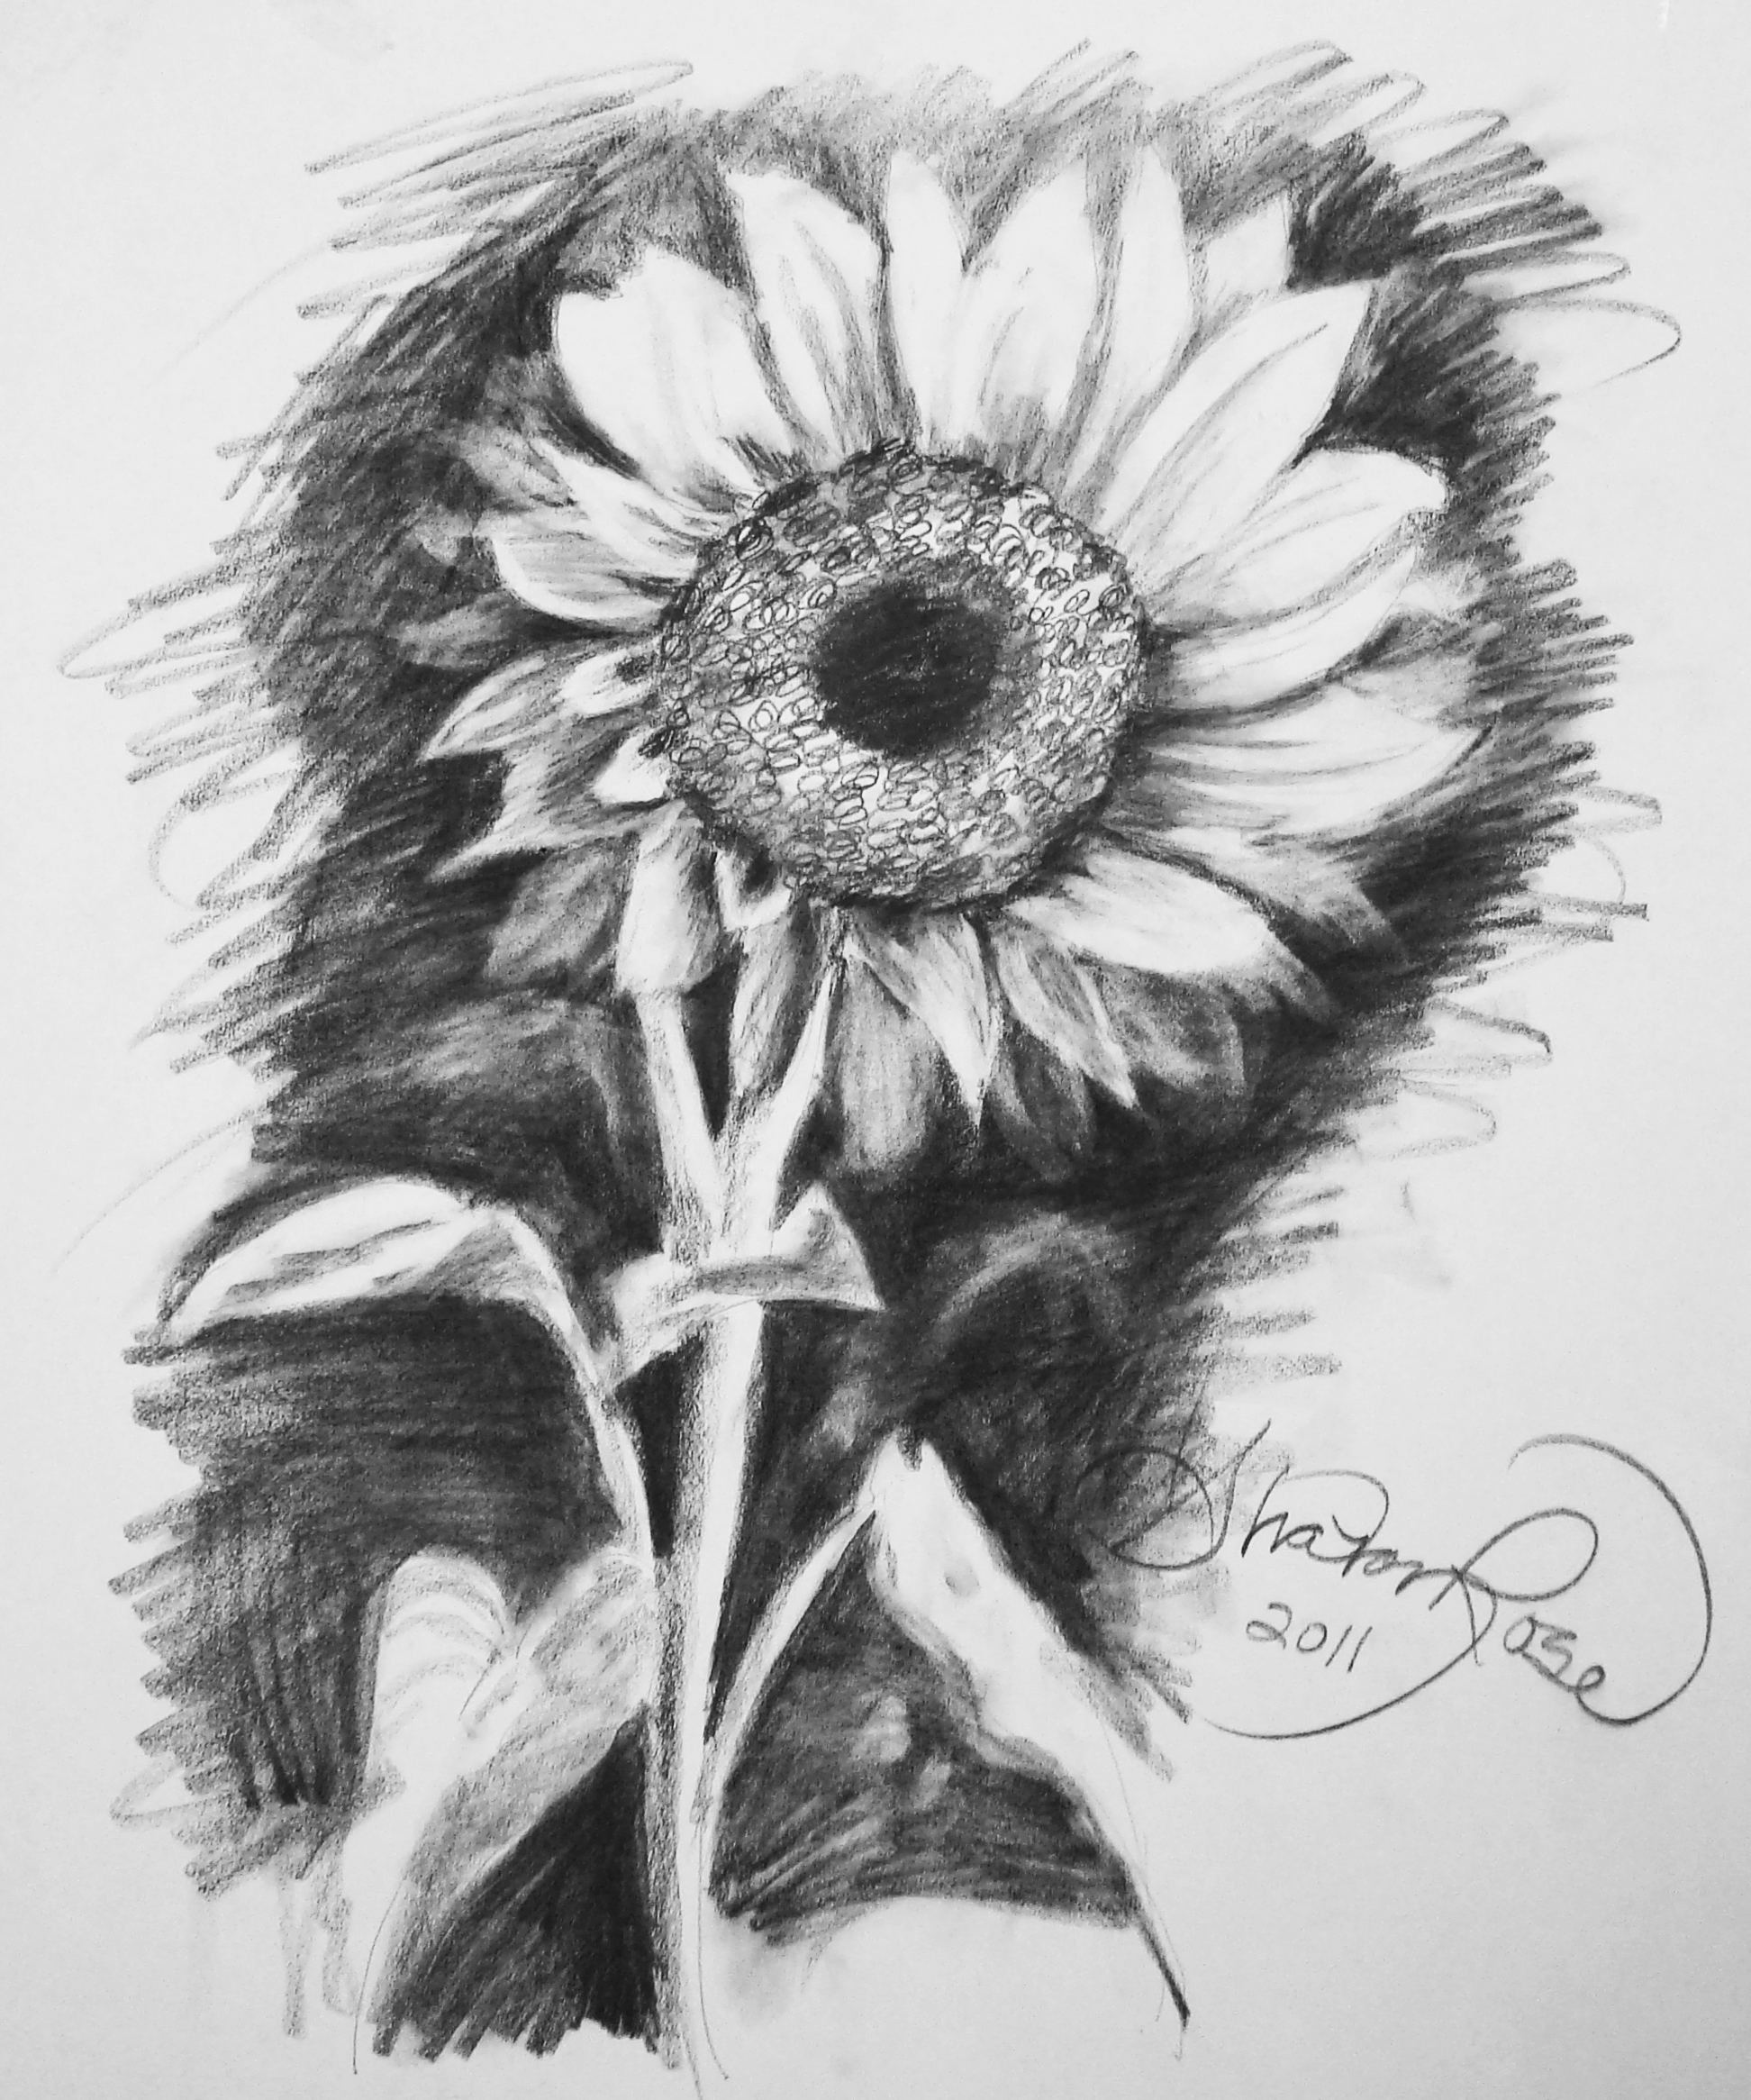 drawing of a sunflower free 10 sunflower drawings in ai a sunflower drawing of